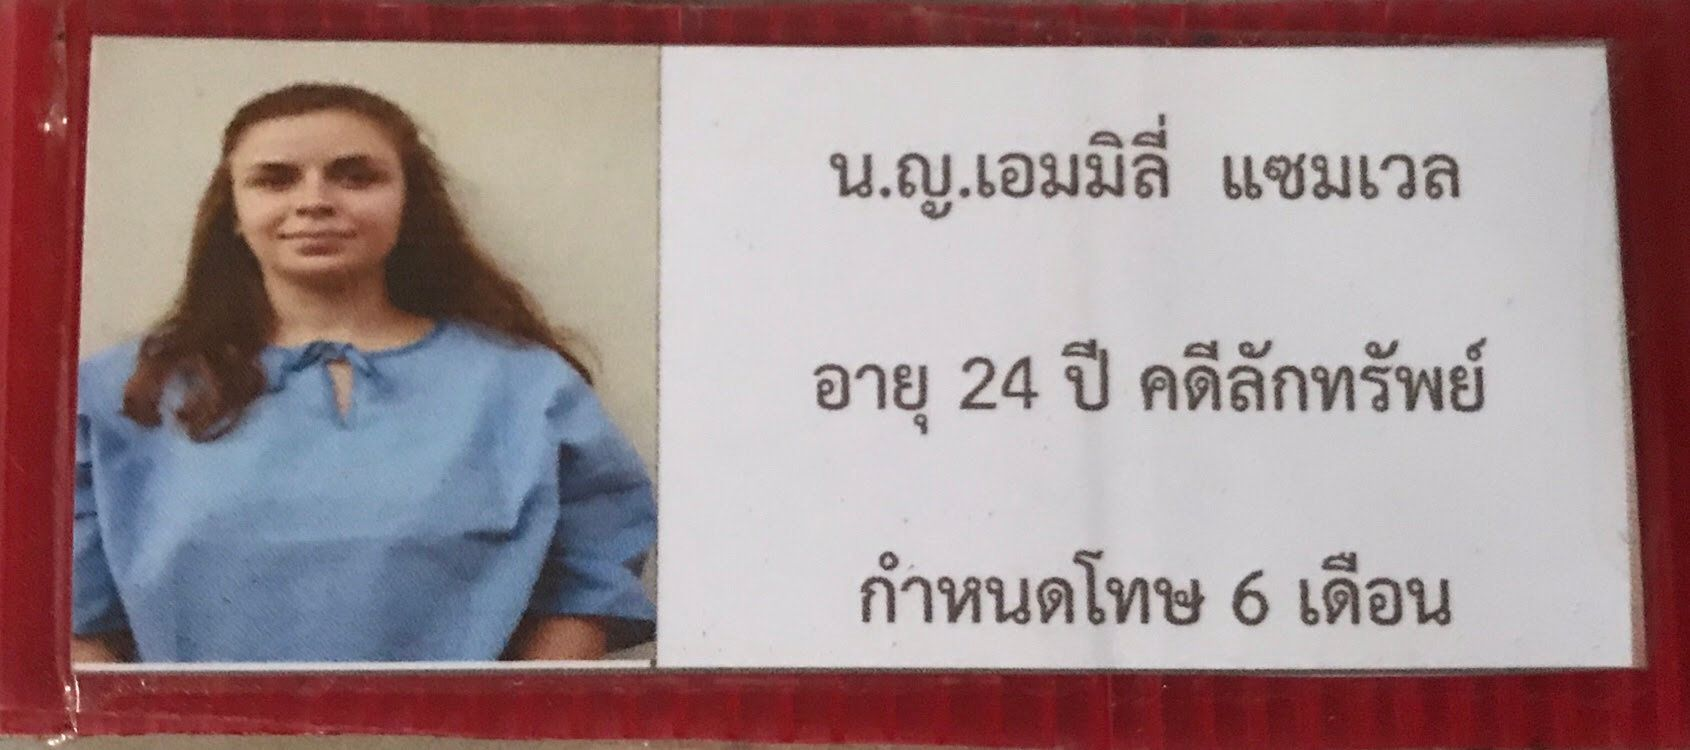 This name card was given to Emilia Semrau when she arrived at the prison inMae Hong Son, Thailand. During her incarcera